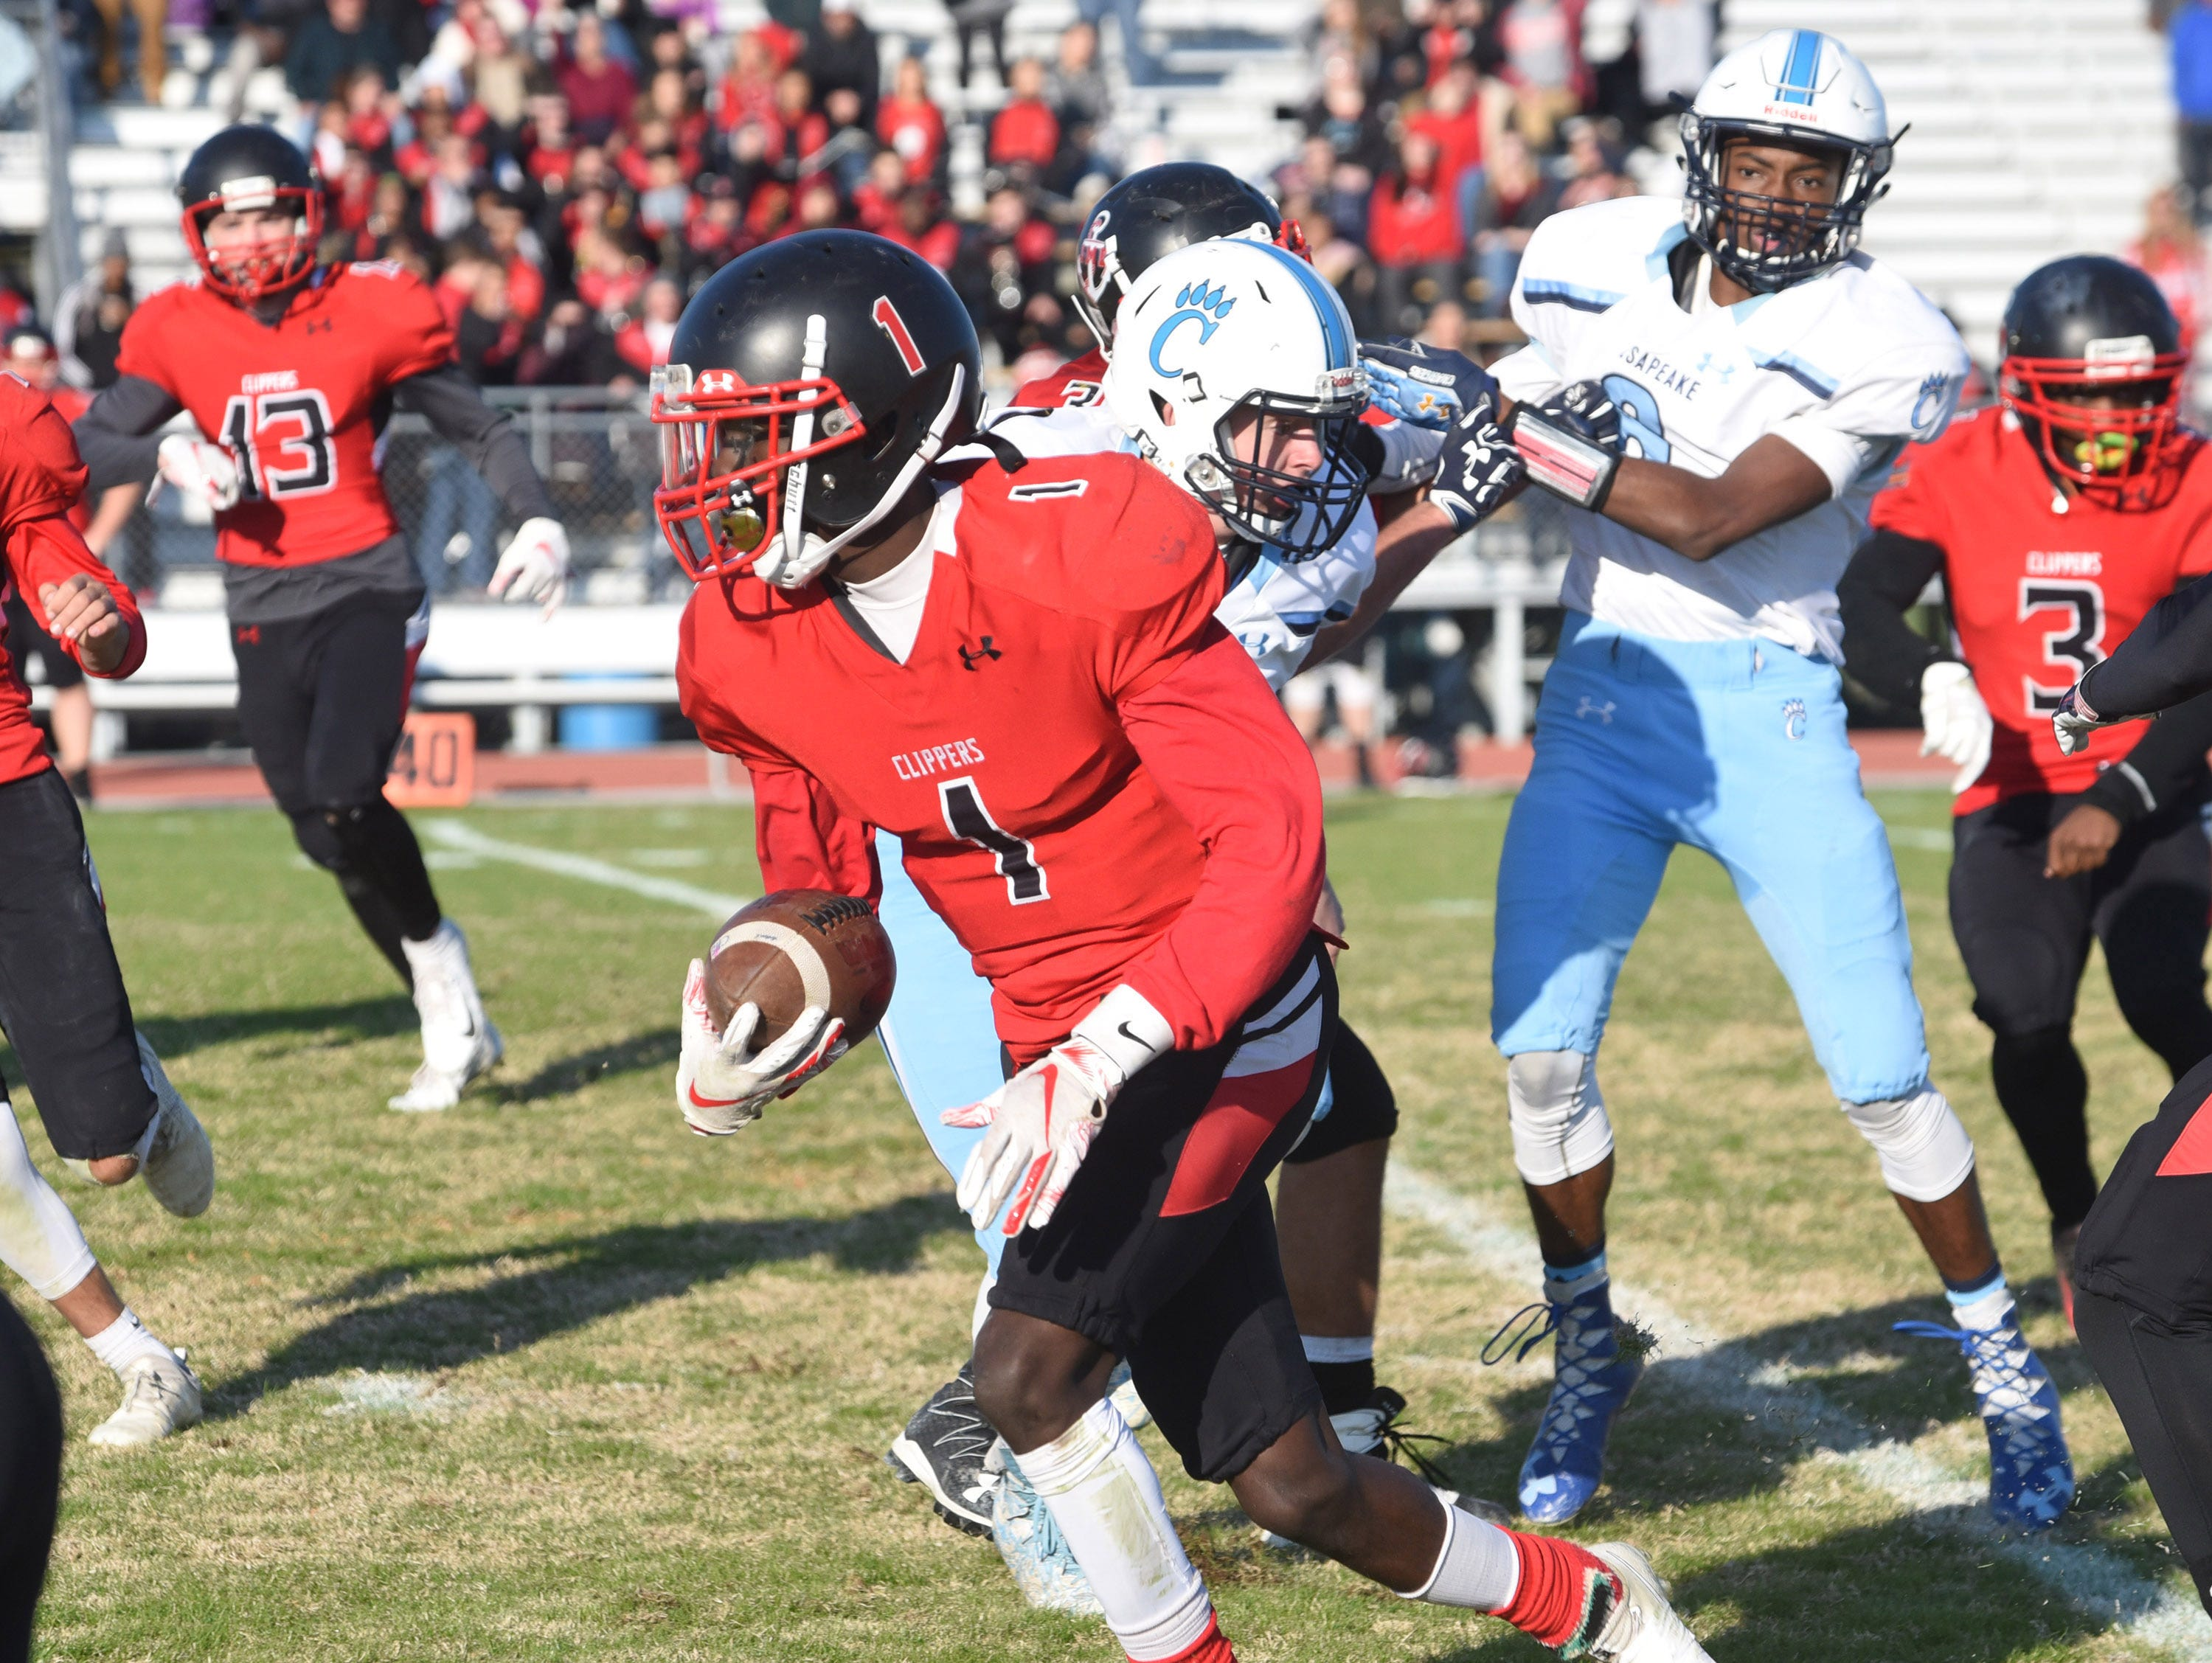 Bennett's Jahryn Long runs with the ball in the second half during James M. Bennett's playoff game vs. Chesapeake at County Stadium on Saturday.